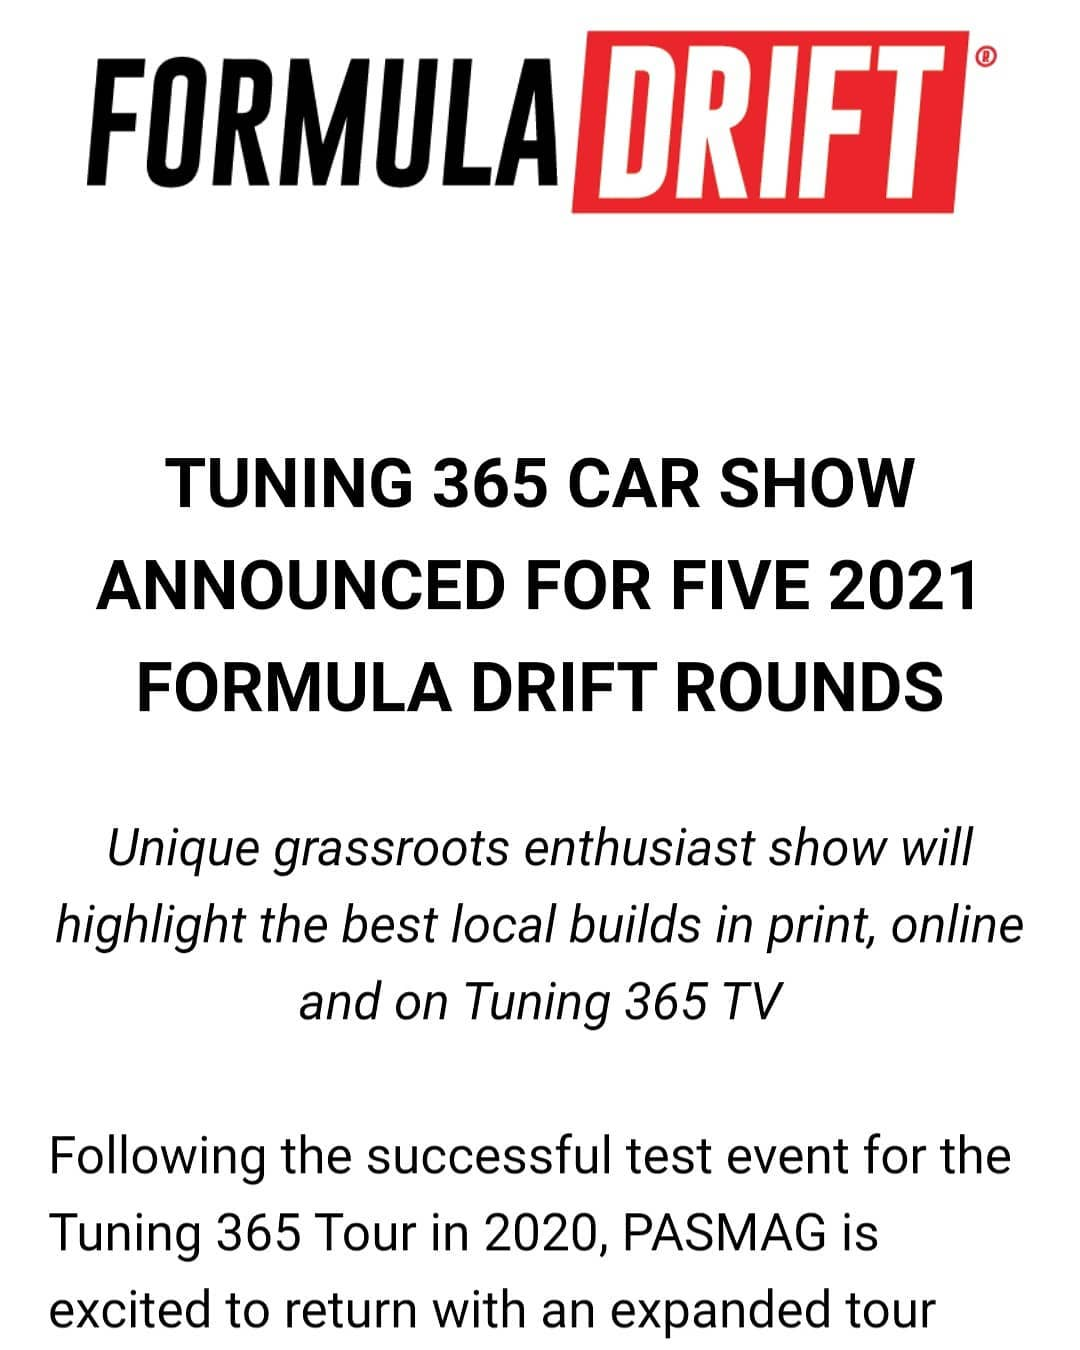 TUNING 365 CAR SHOW ANNOUNCED FOR FIVE 2021 FORMULA DRIFT ROUNDS